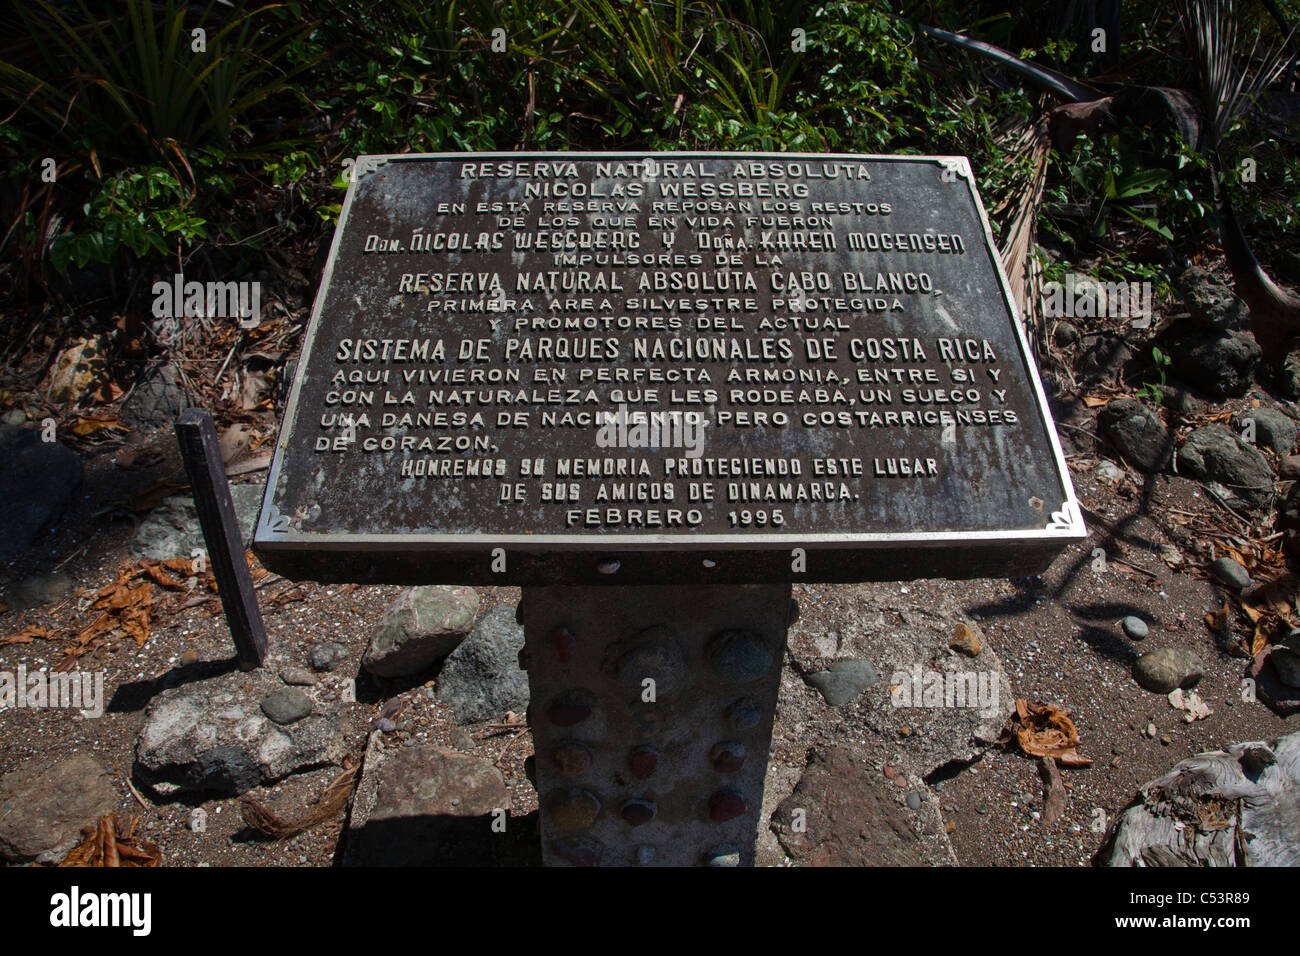 Memorial  for conservationist couple Nicolas Wessberg and Karin Morgensen - Stock Image